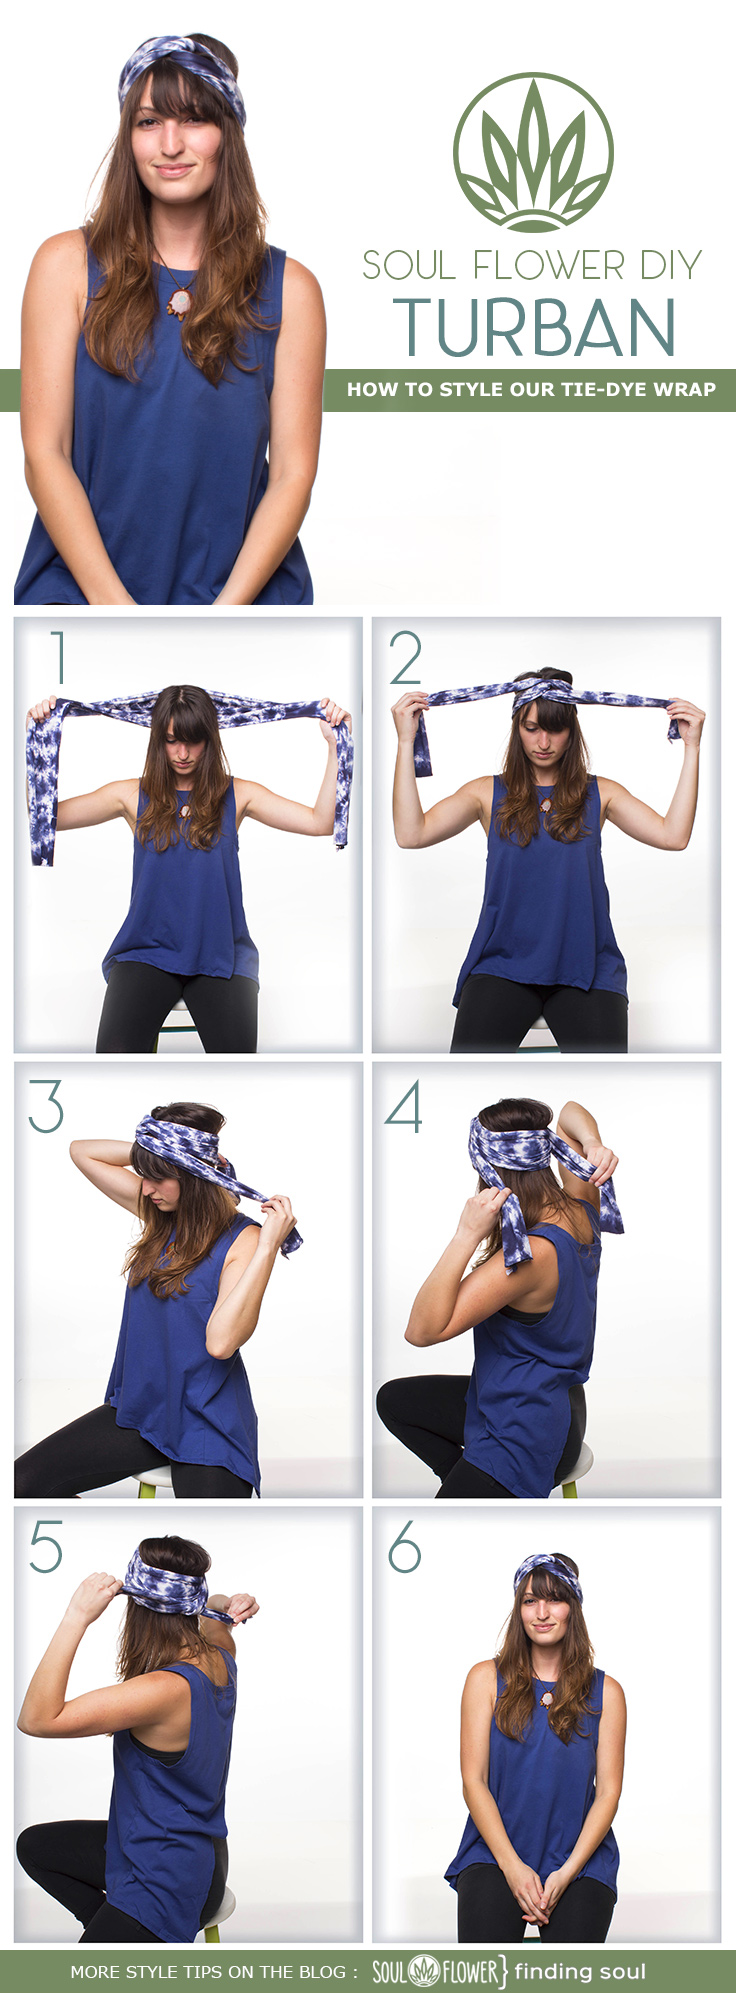 6 Ways to Style Our Tie-Dye Wrap | Soul Flower Blog | Soul Flower | Soulflower | Style Tips | boho | hippie